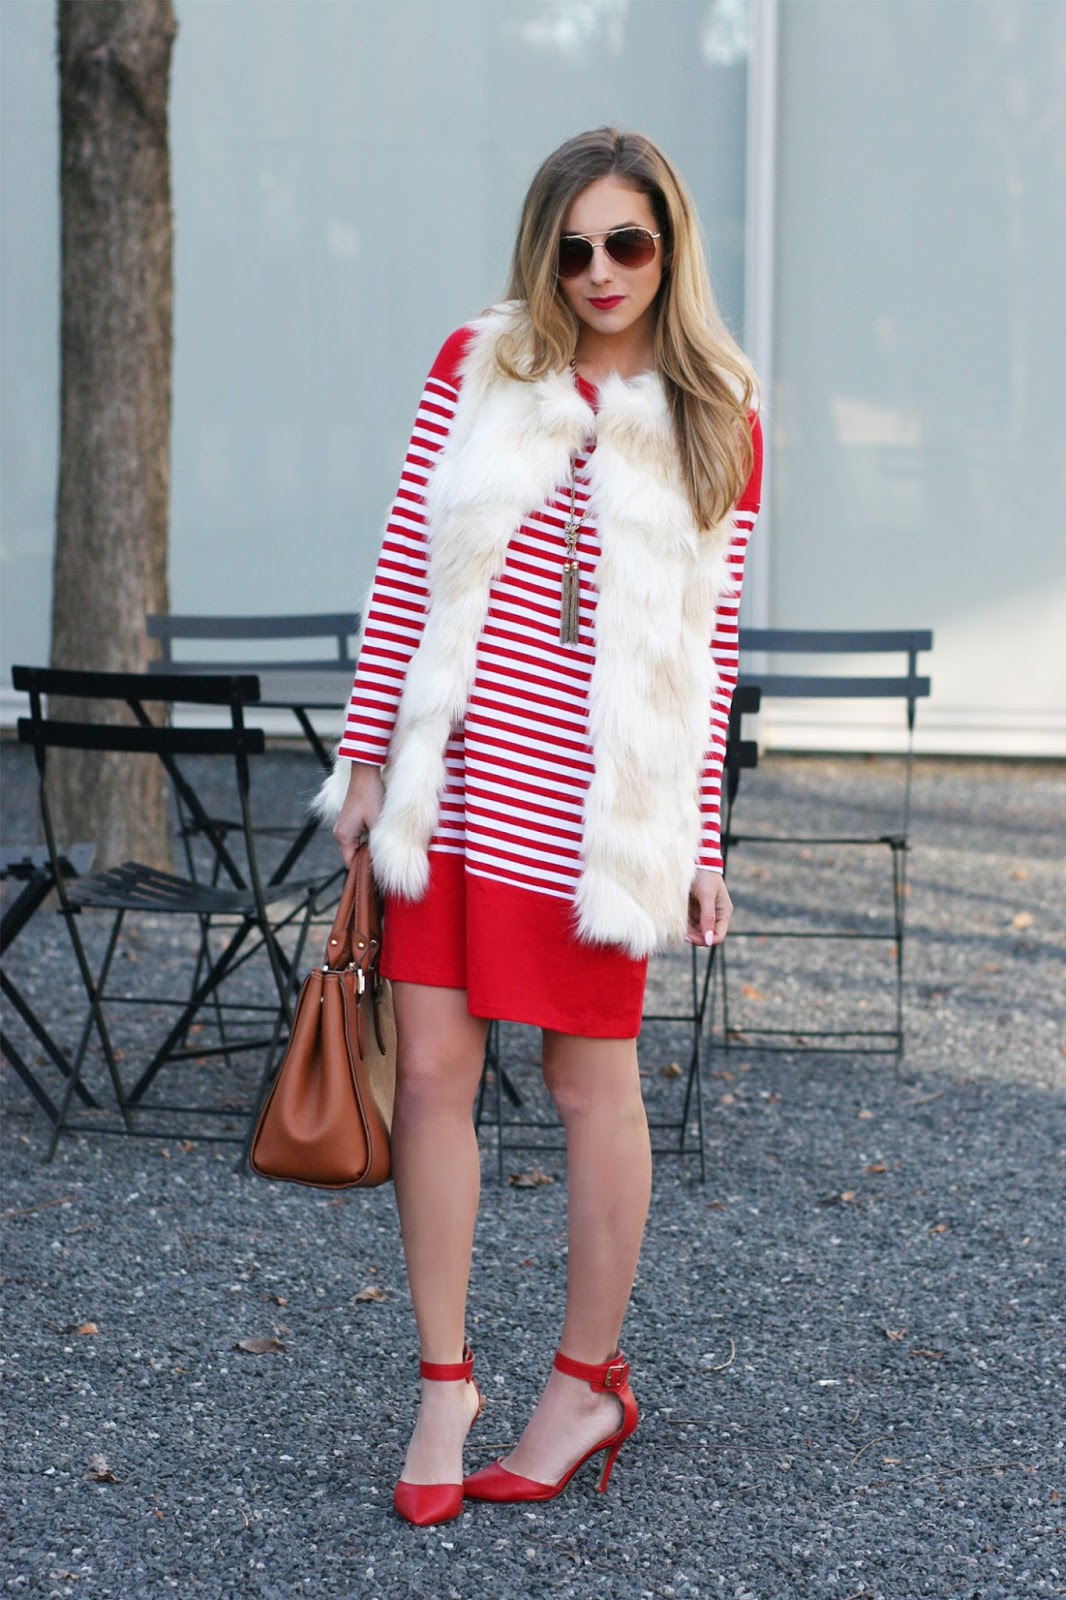 Perfect Day Look for Valentine's